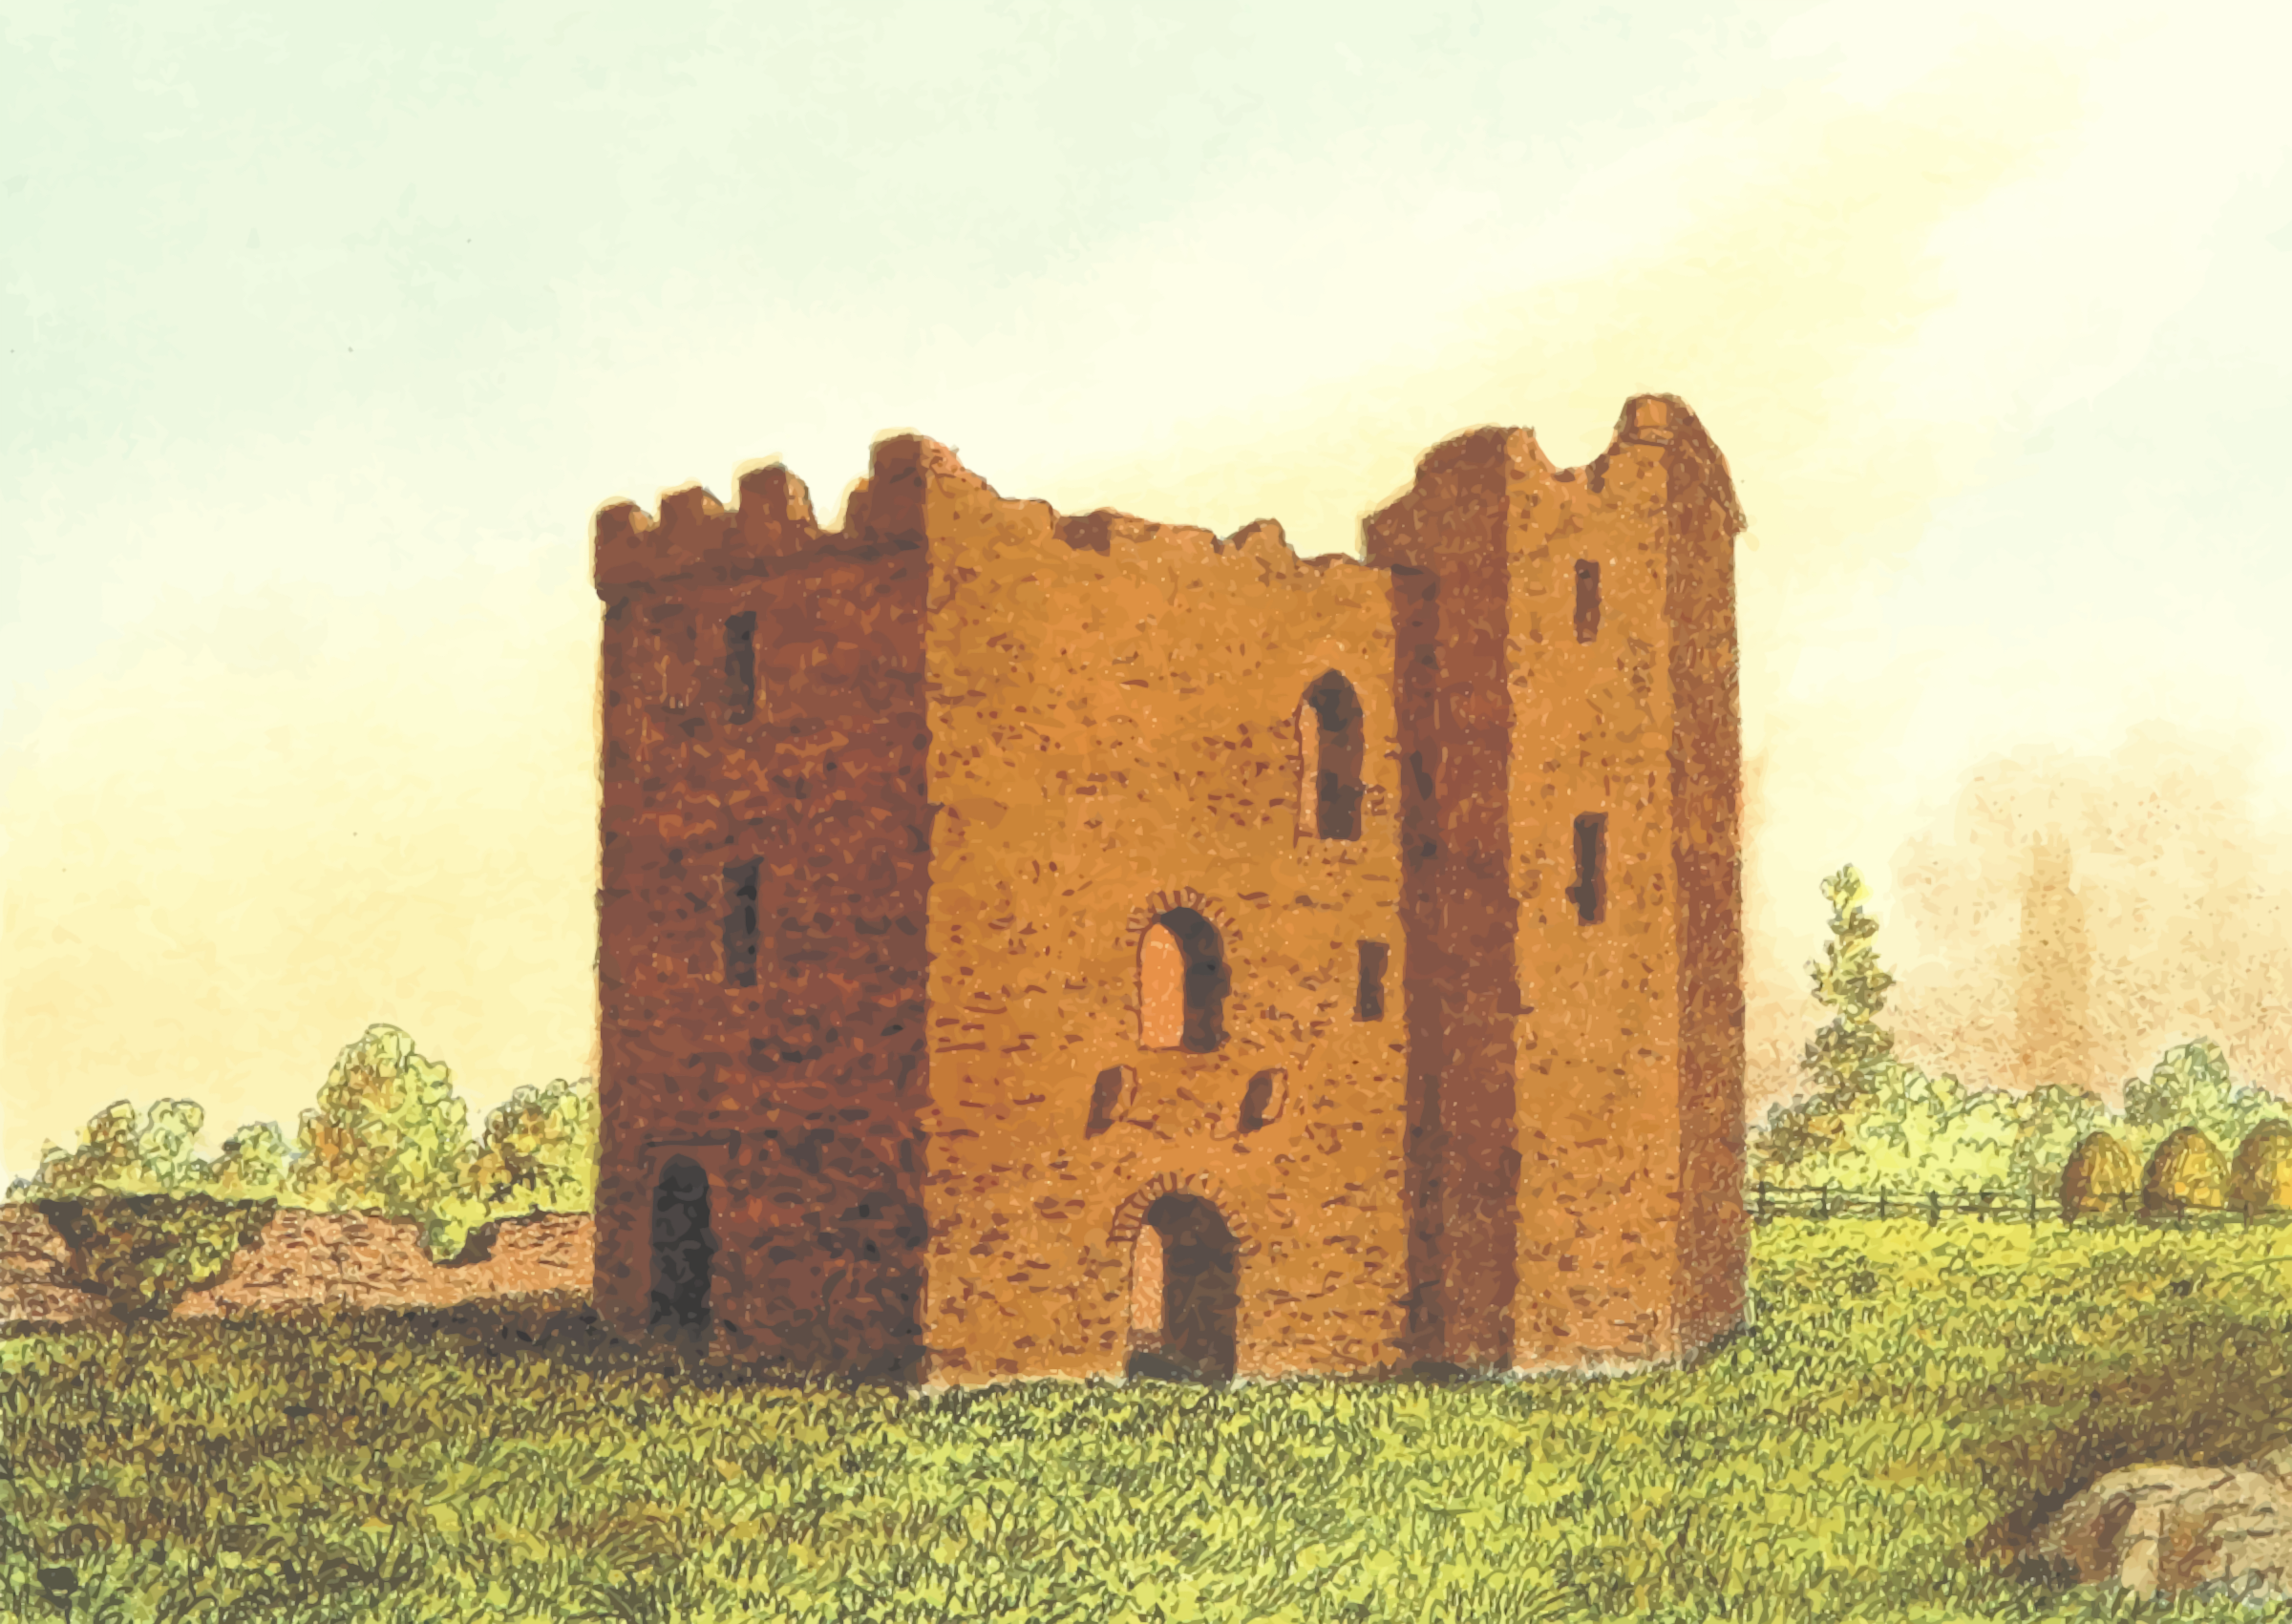 Hussey Castle by Firkin